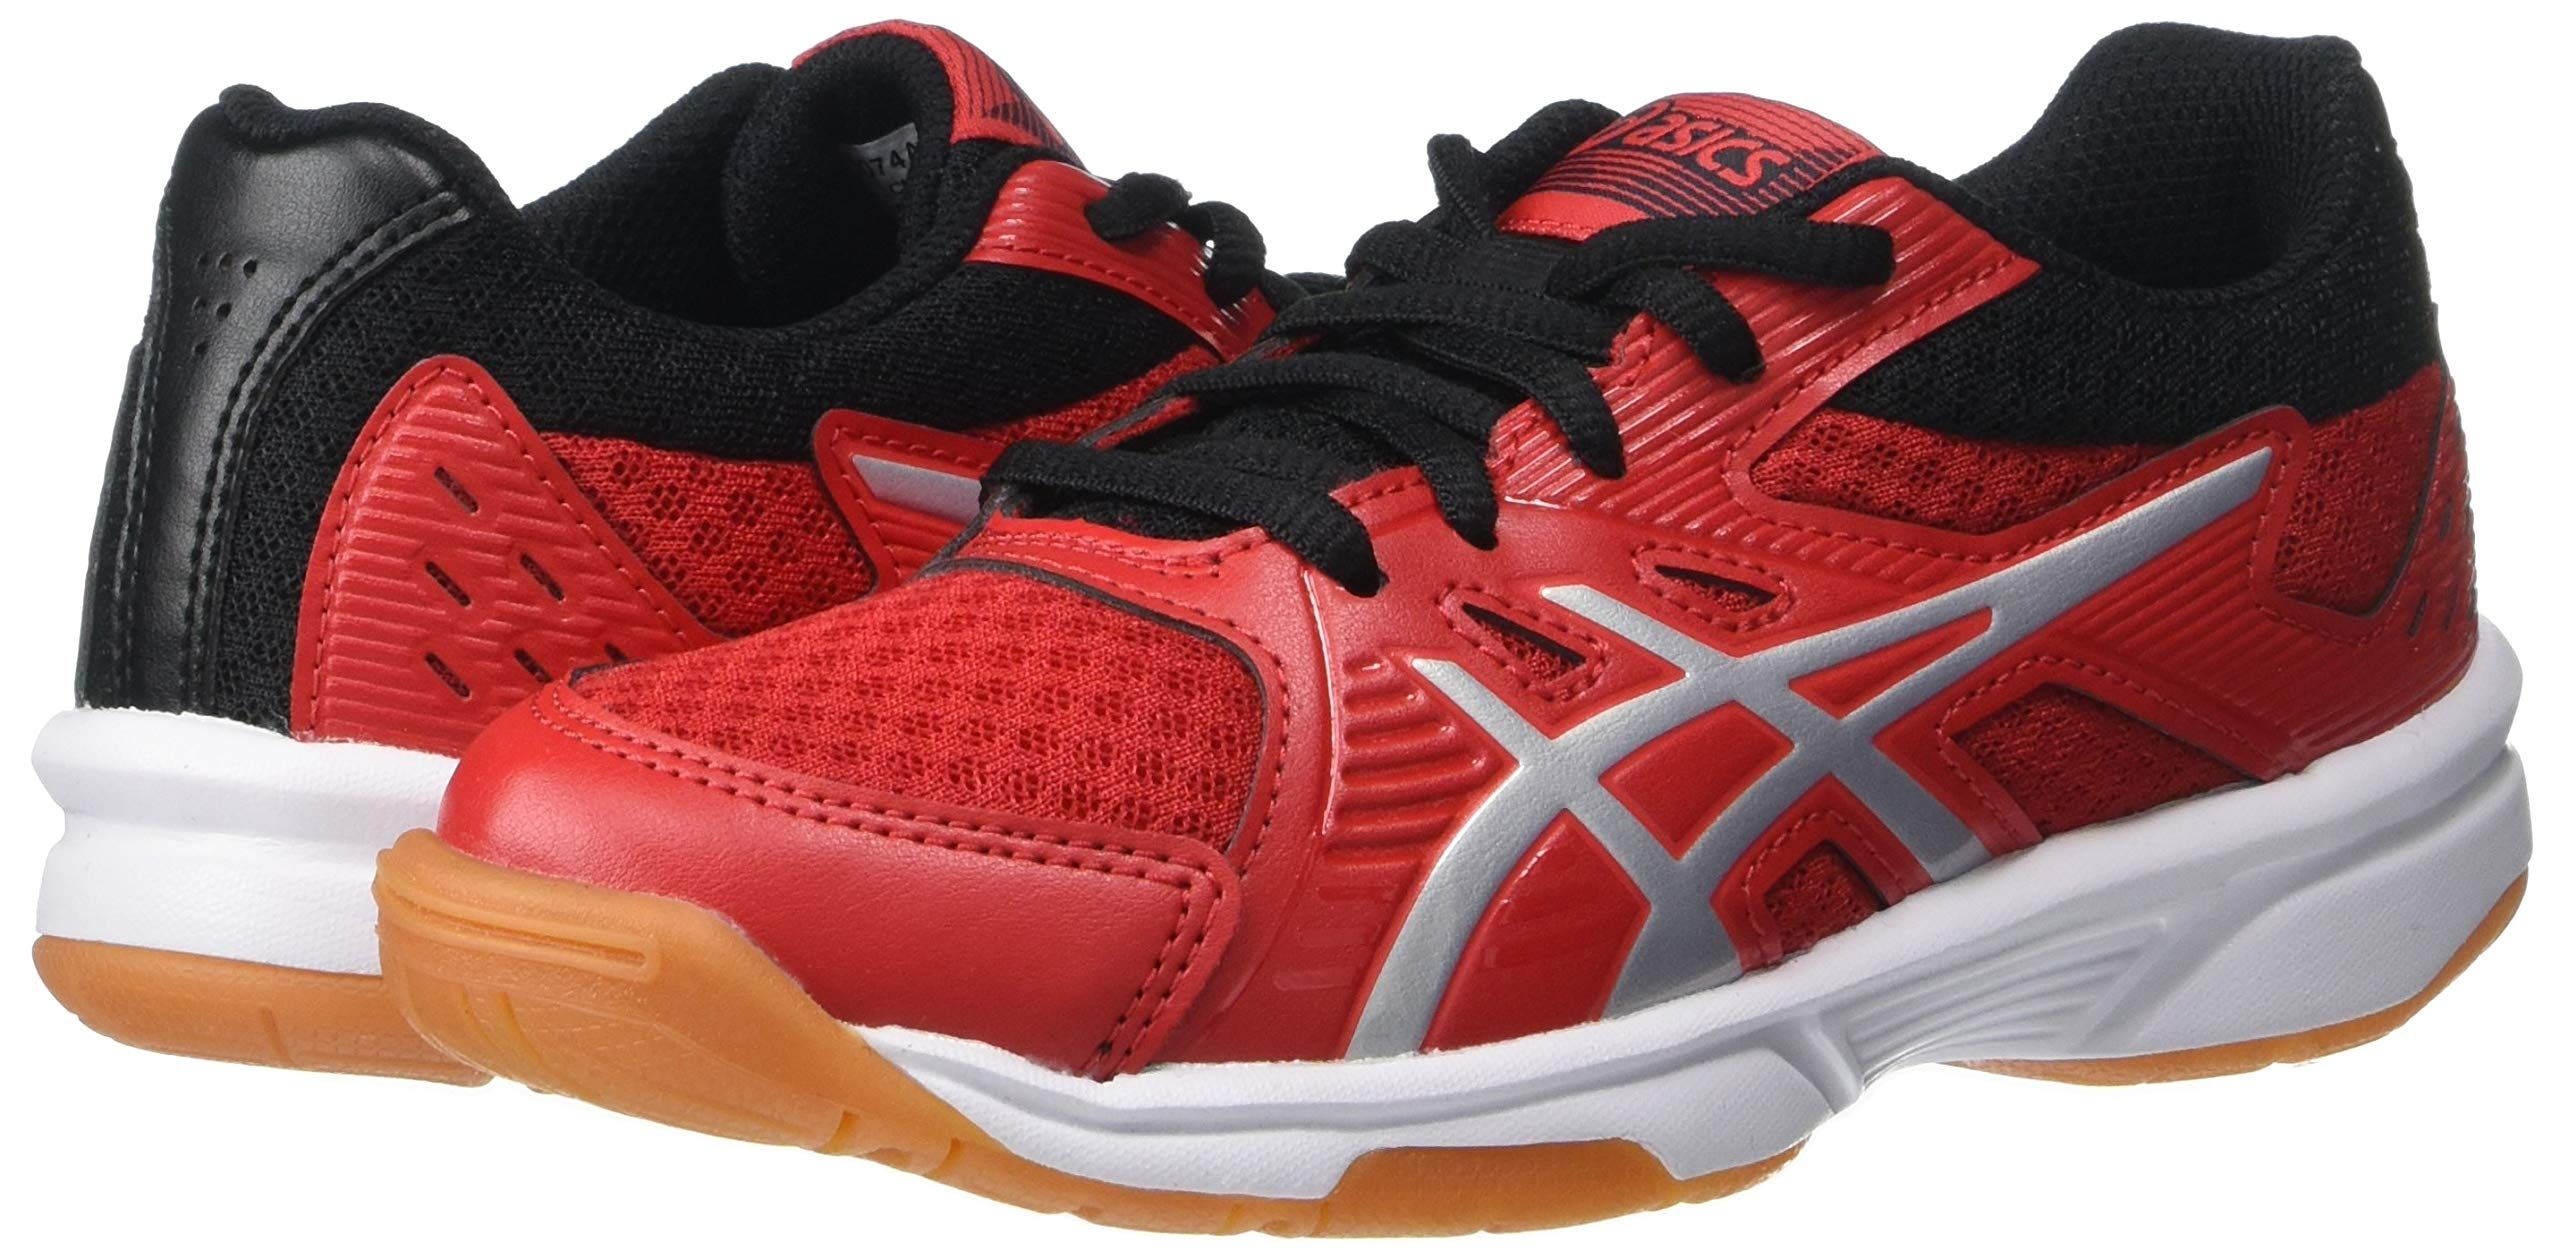 Asics Kid S Upcourt 3 Gs Volleyball Shoes Ad Upcourt Kid Asics Shoes In 2020 Volleyball Shoes Shoes Asics